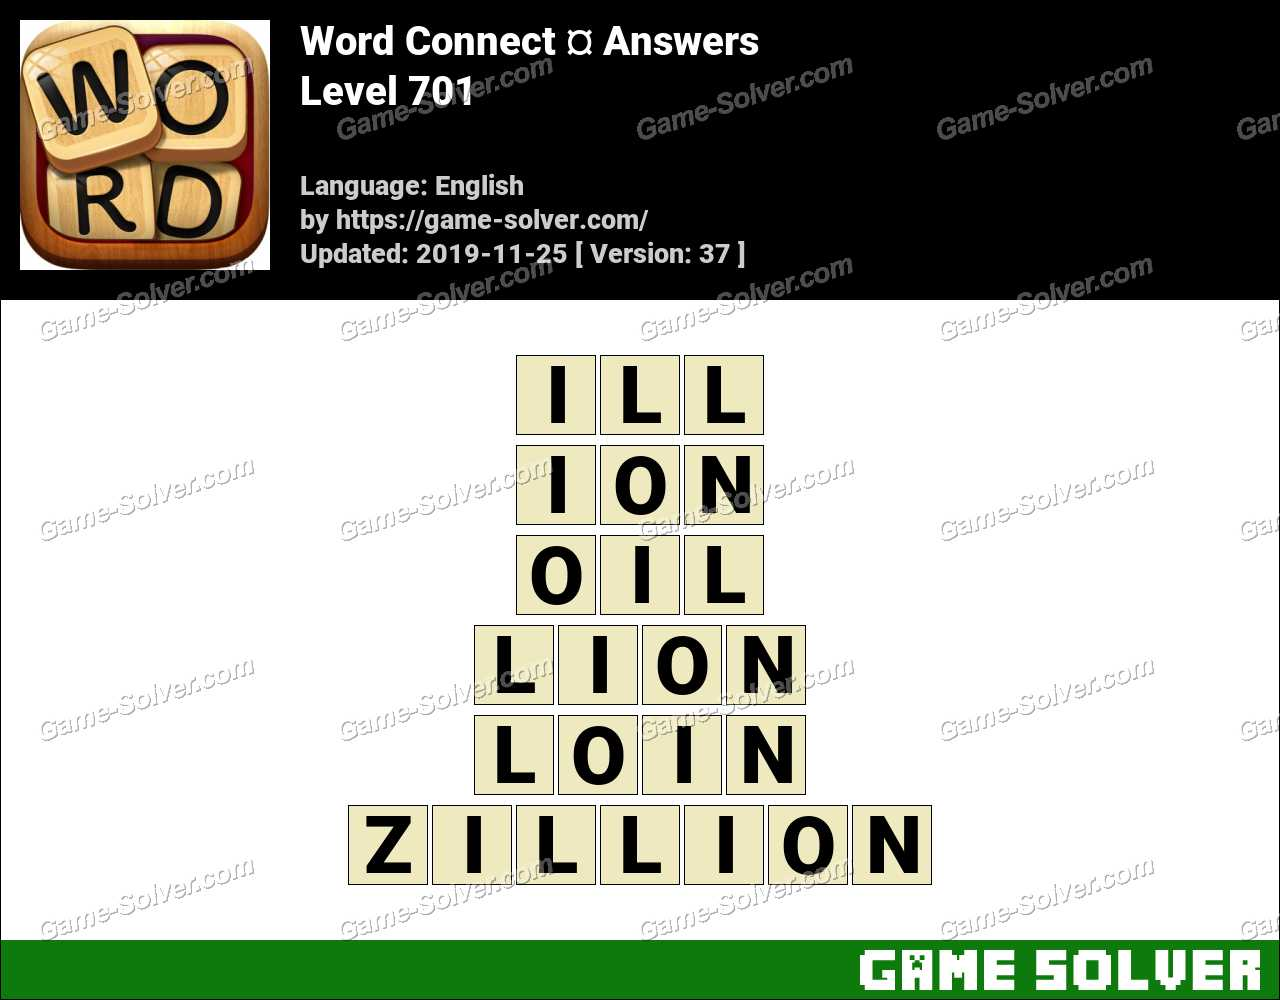 Word Connect Level 701 Answers